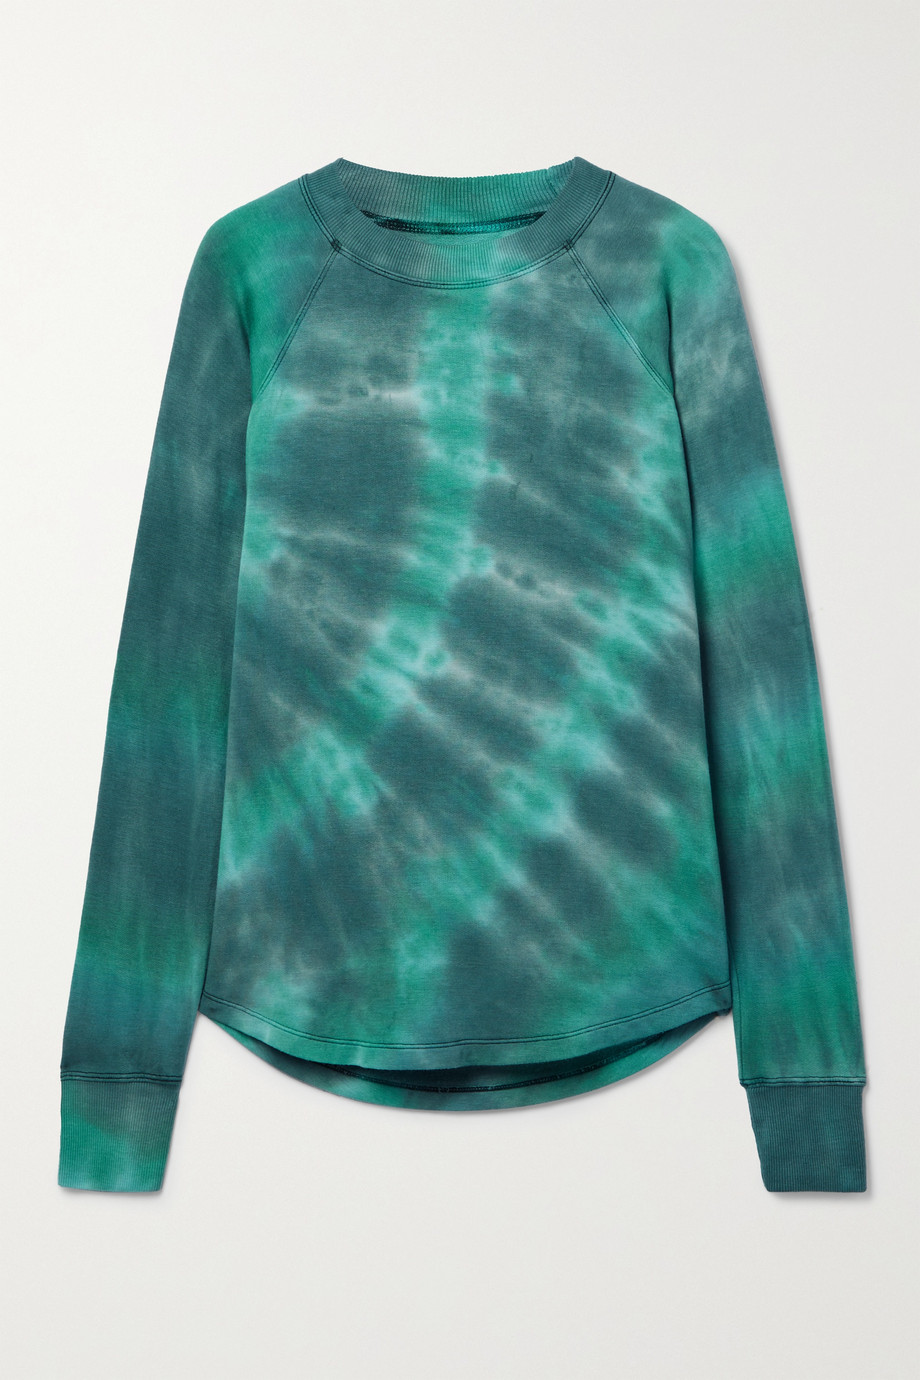 SPLITS59 Warm Up tie-dyed stretch-modal sweatshirt